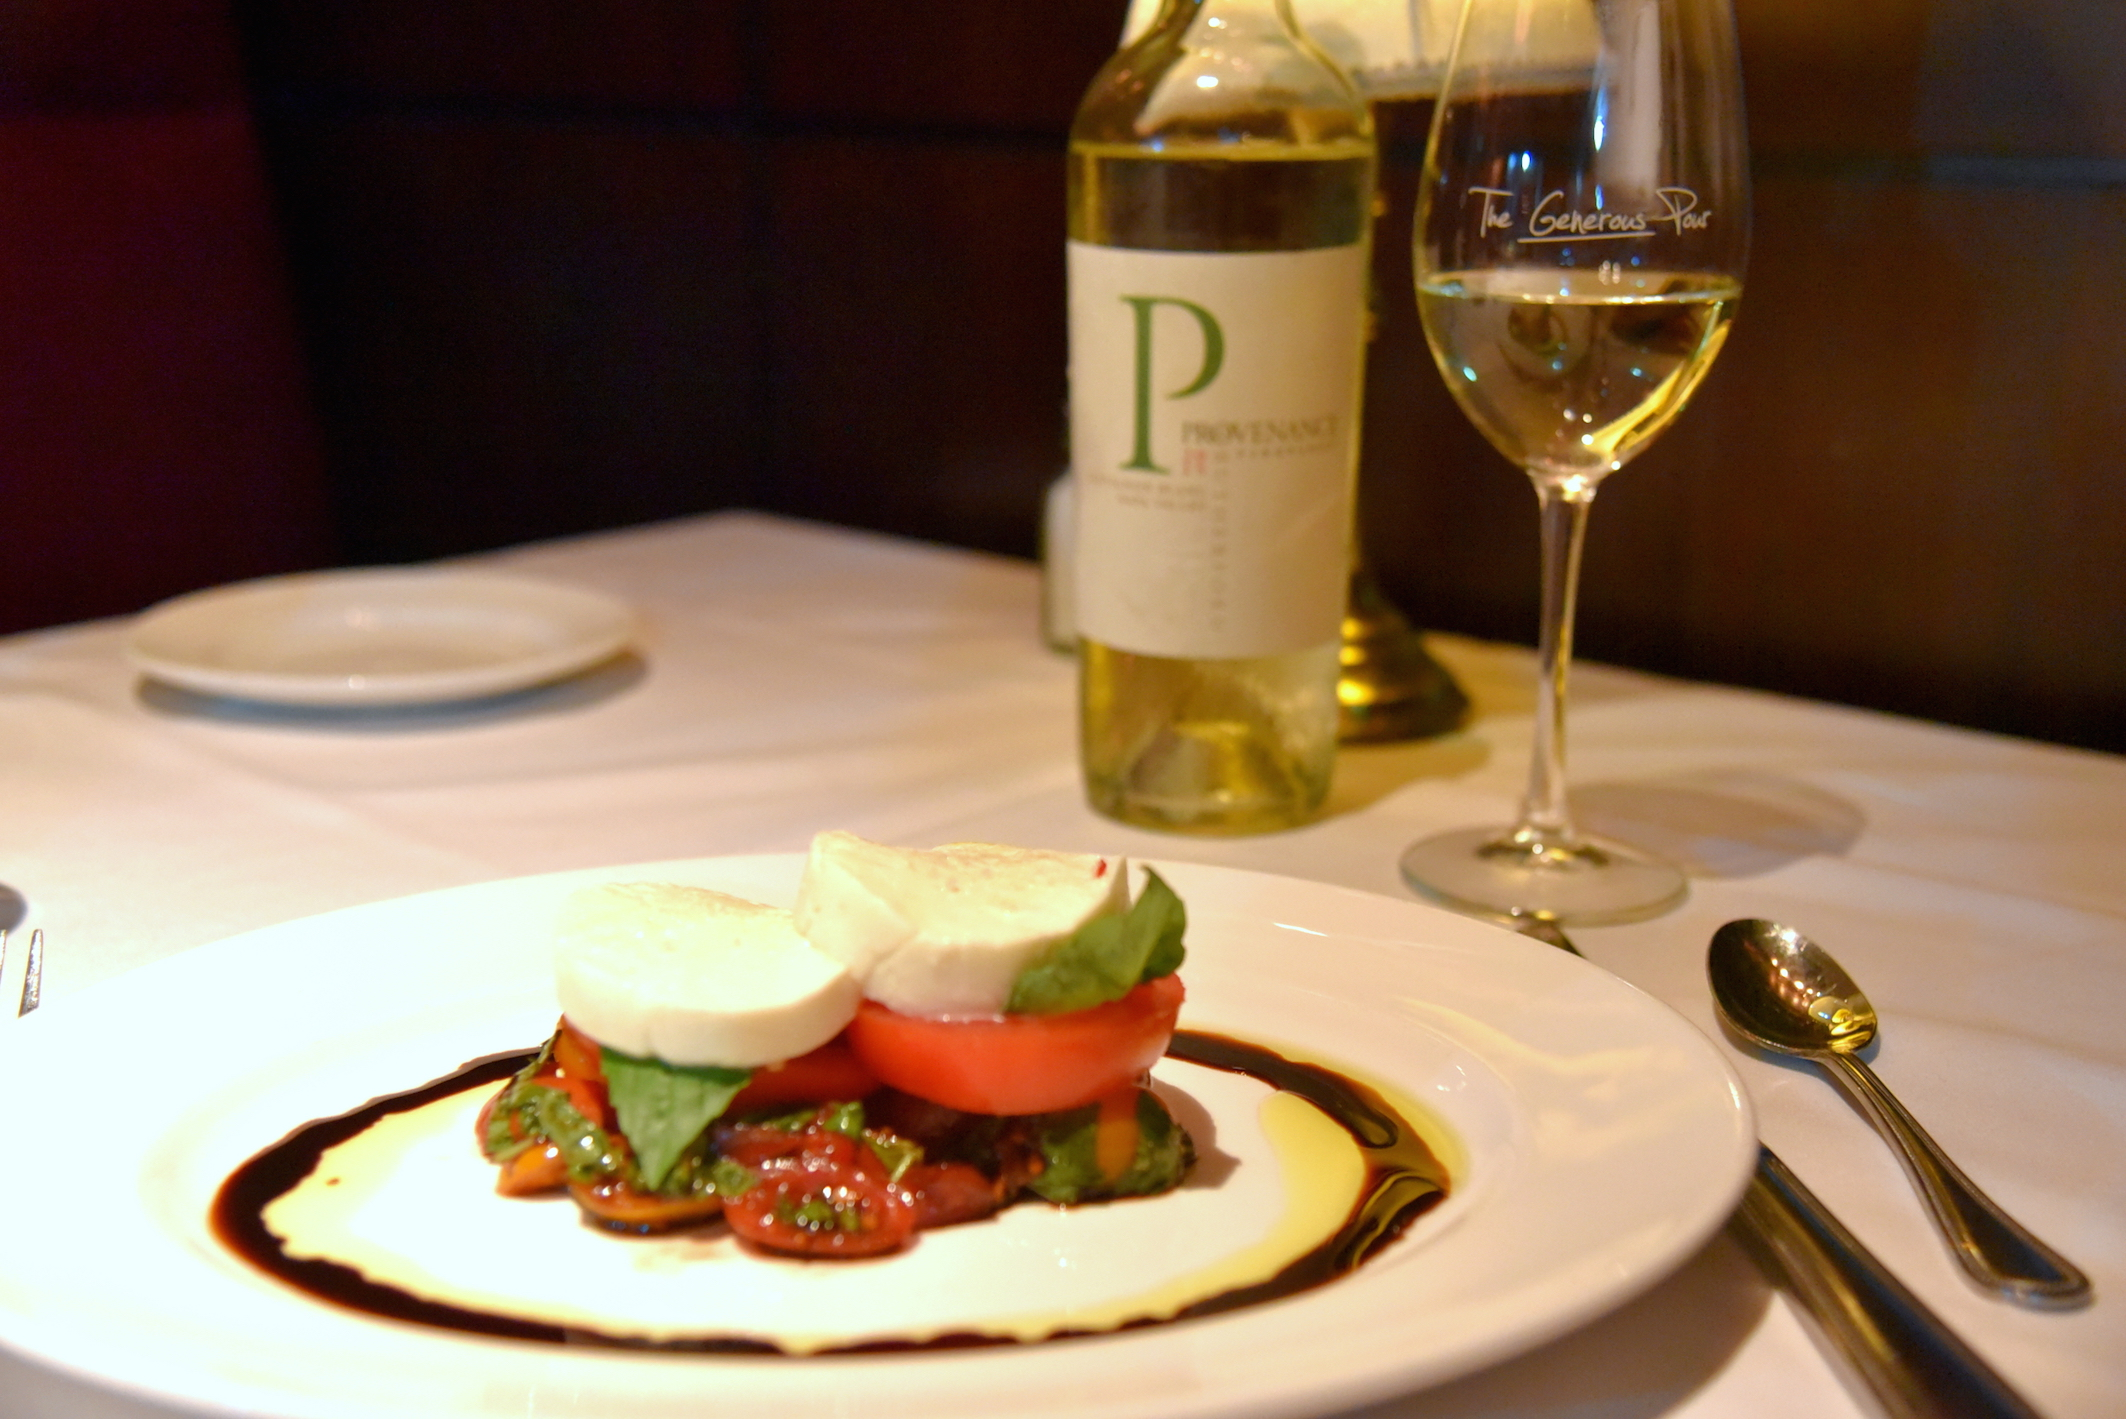 Homemade mozzarella at the Capital Grille NYC